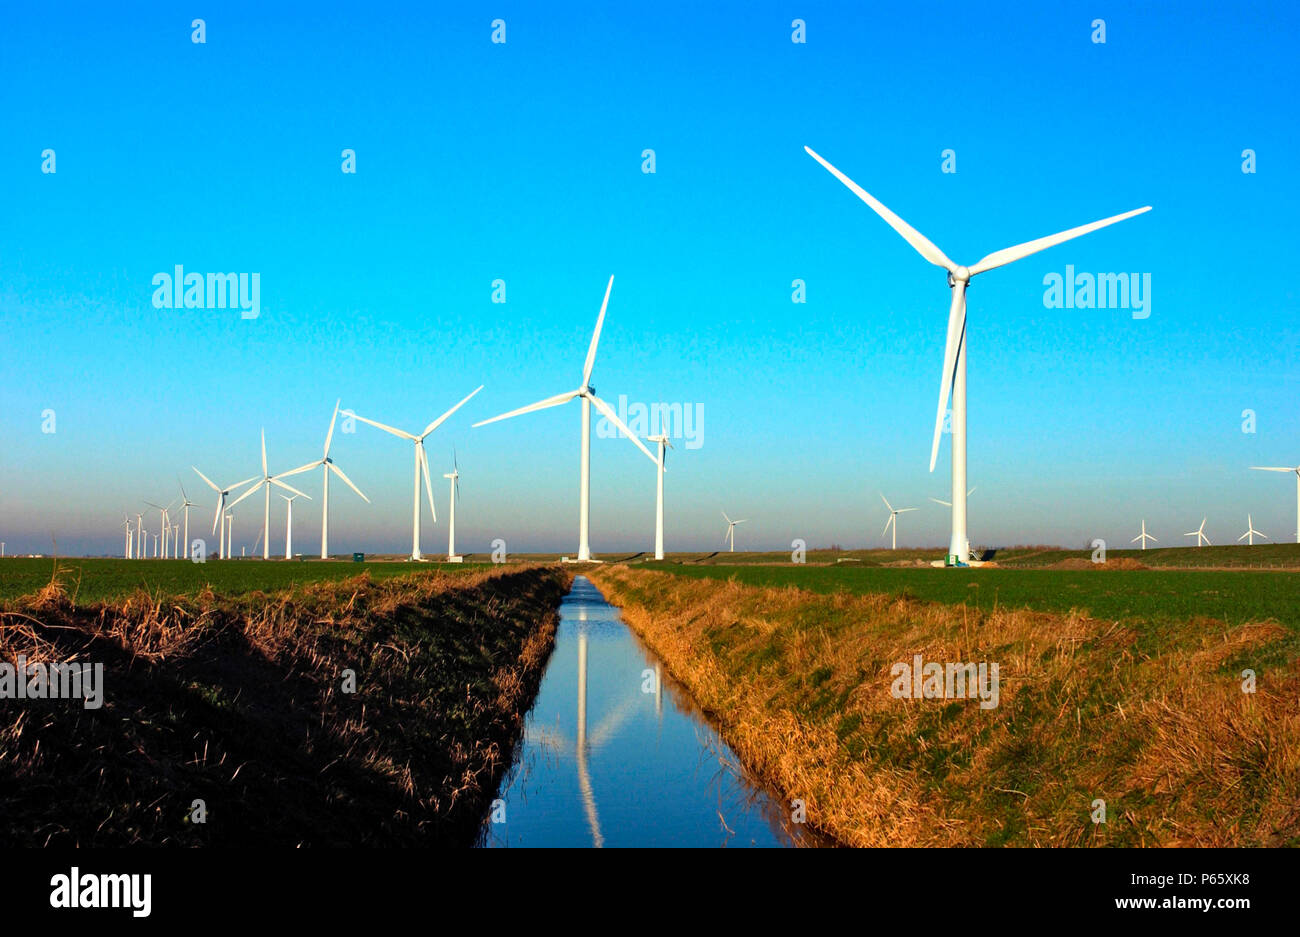 Soenke Stock Photos & Soenke Stock Images - Alamy